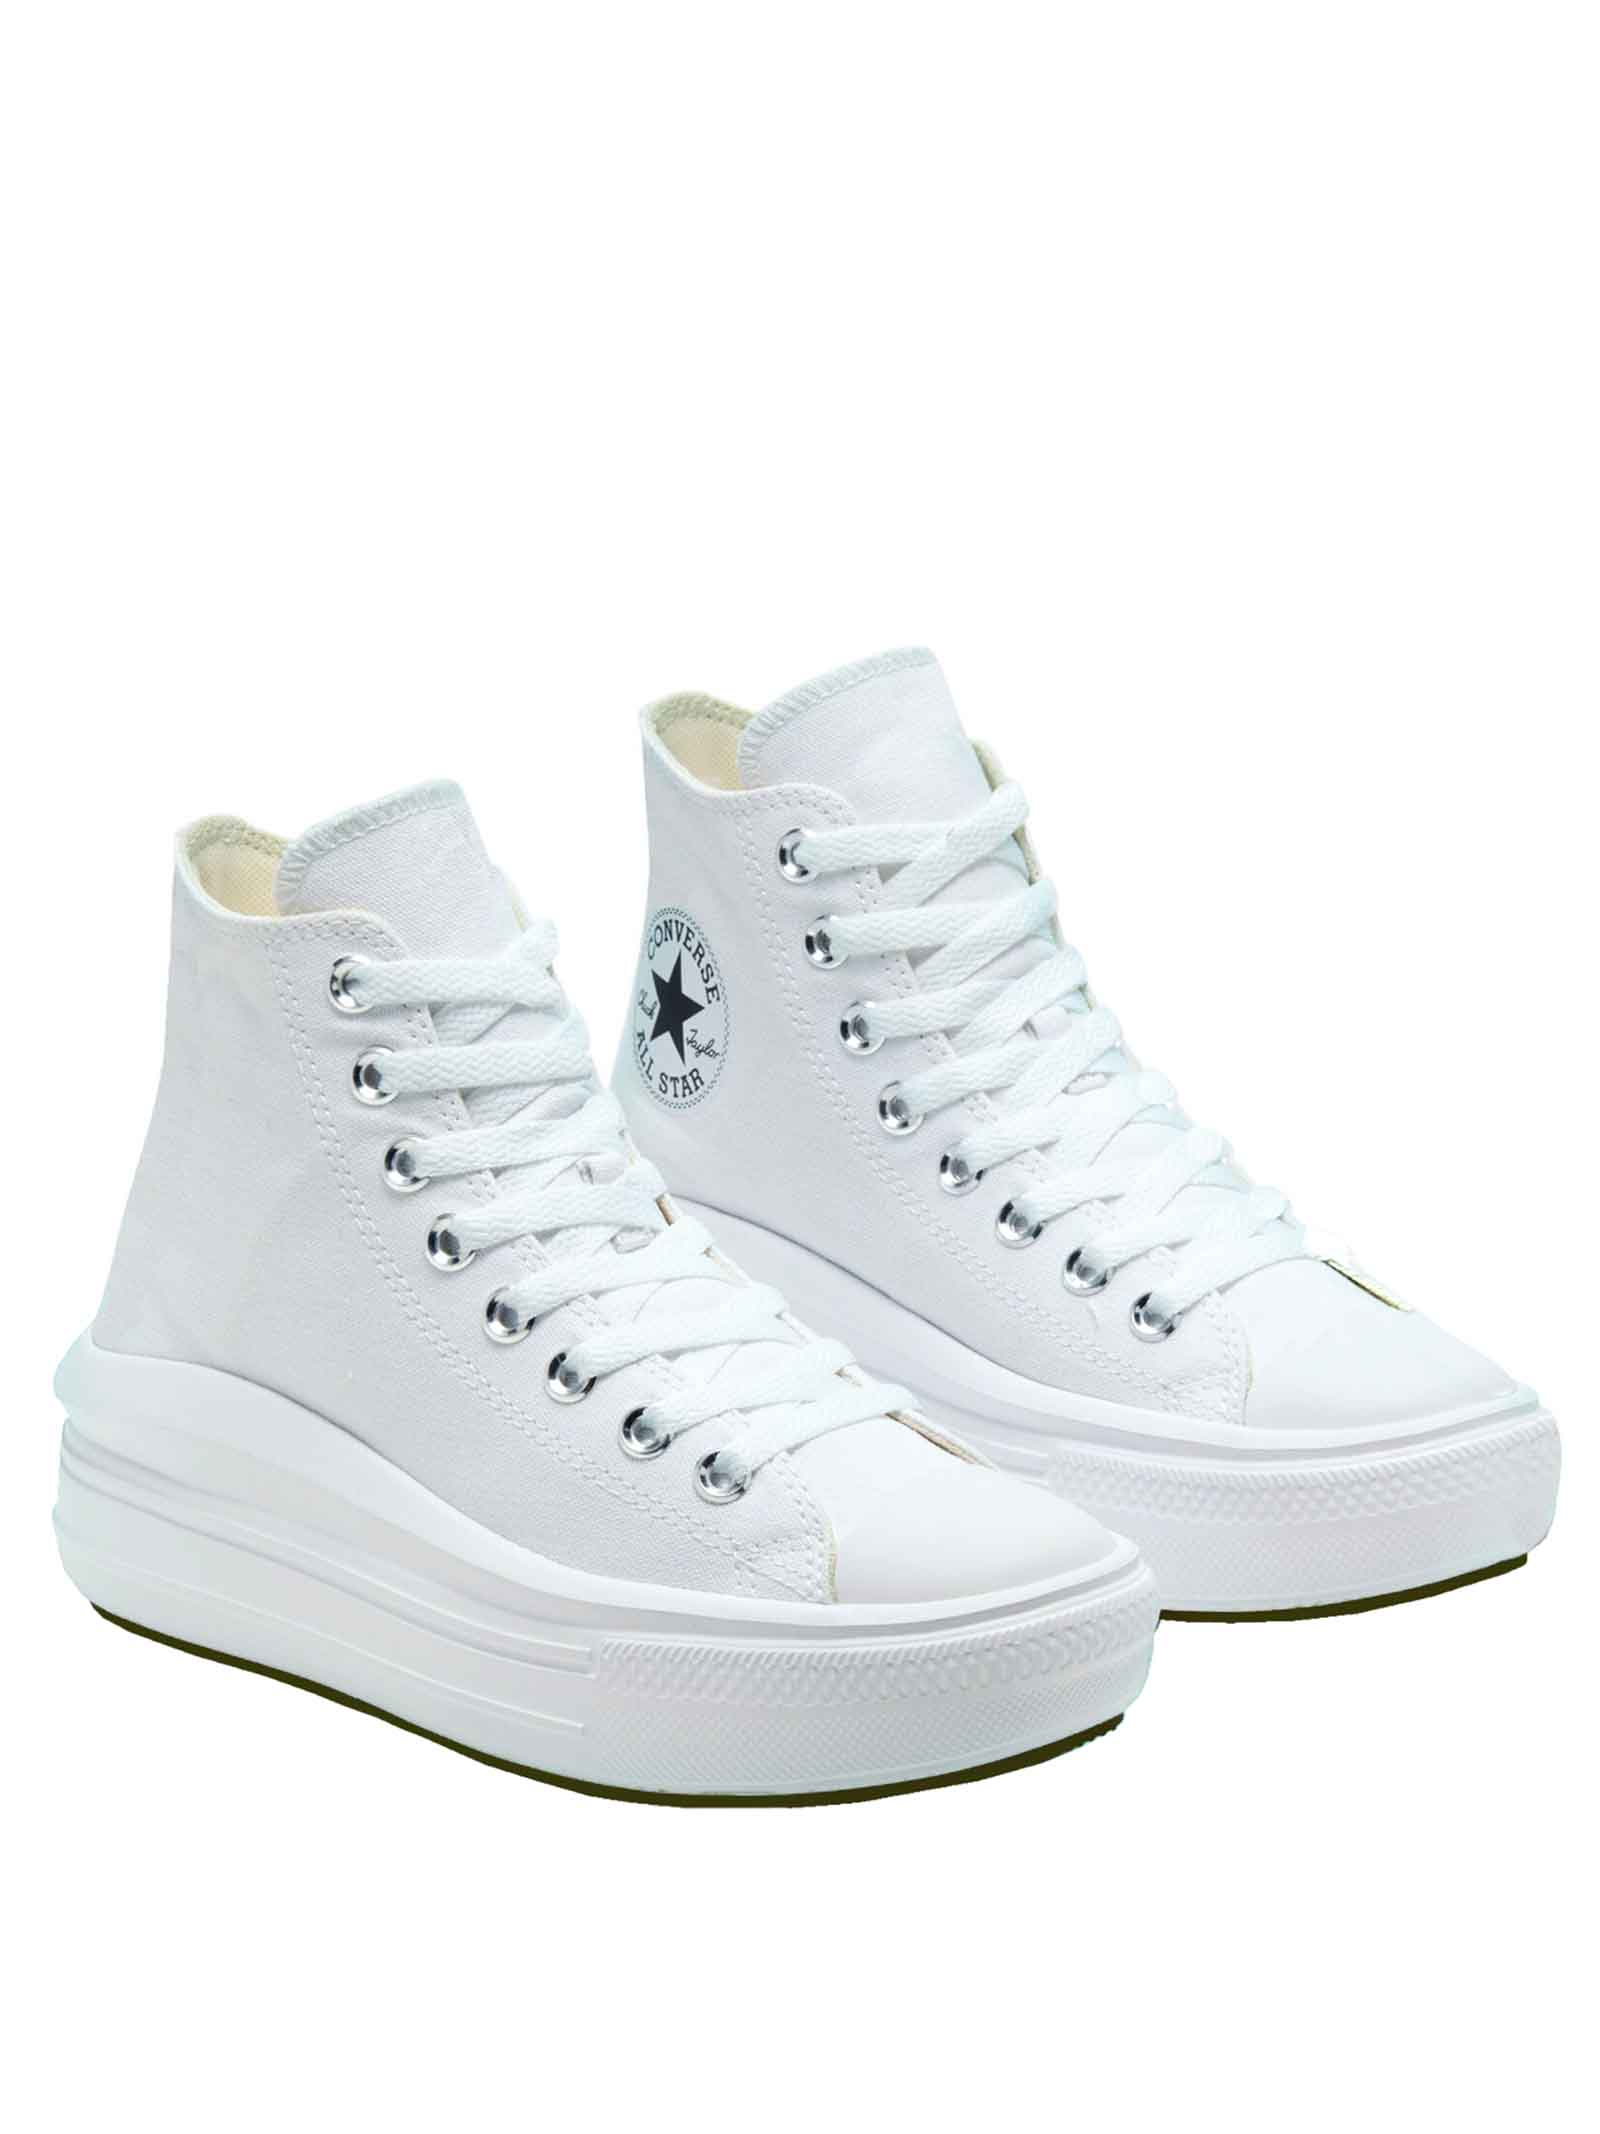 Women's Shoes Sneakers Chuck Taylor Hight Top in White Canvas and Ultra-lightweight Platform Sole Converse | Sneakers | CHUCK TAYLOR568498C